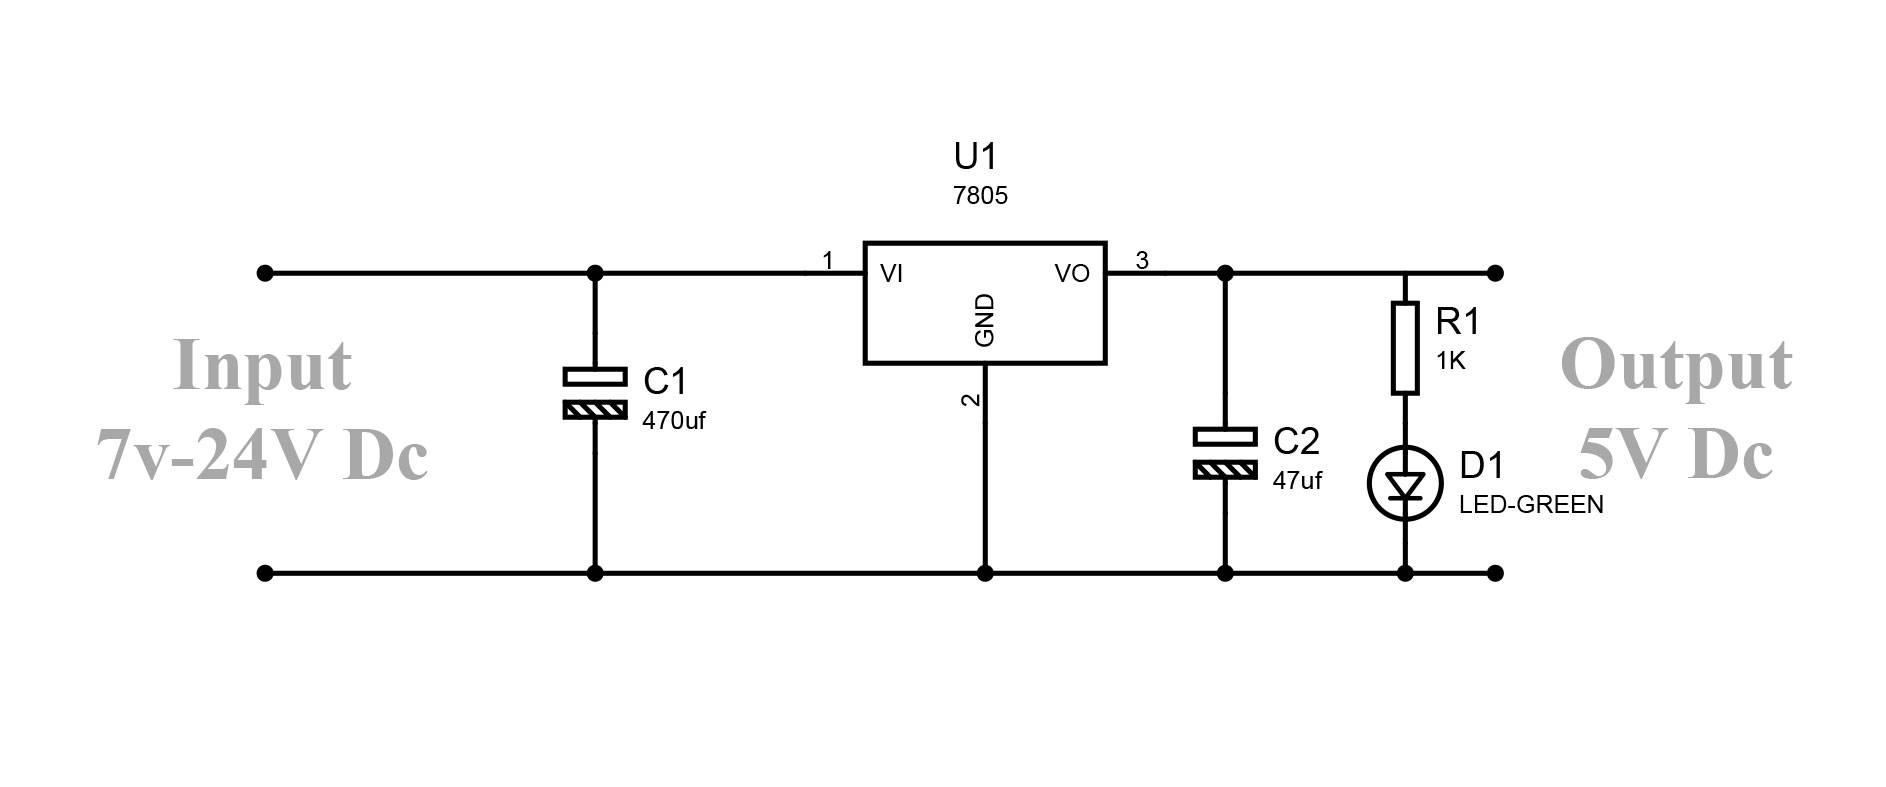 hight resolution of how to convert 9v to 5v regulator circuit earth bondhonfig regulator lm7805 circuit diagram